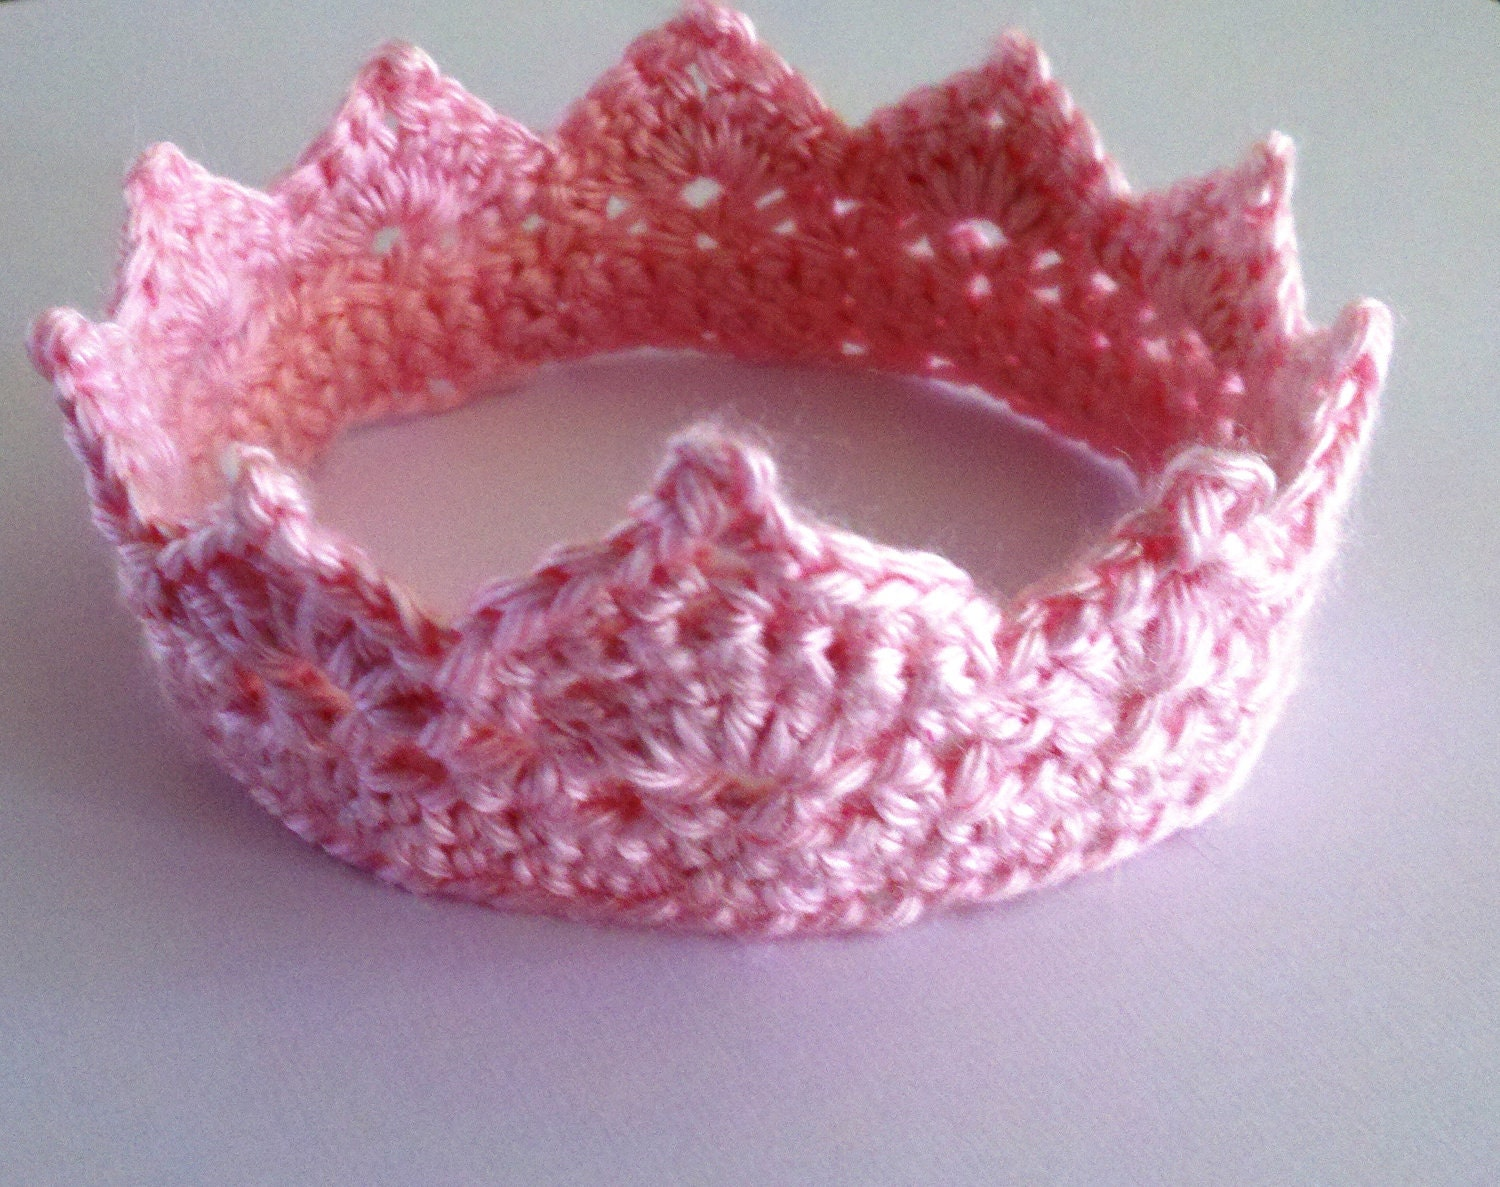 Crochet Baby Crown Headband Pattern : Crochet Photo Prop Newborn Princess Crown